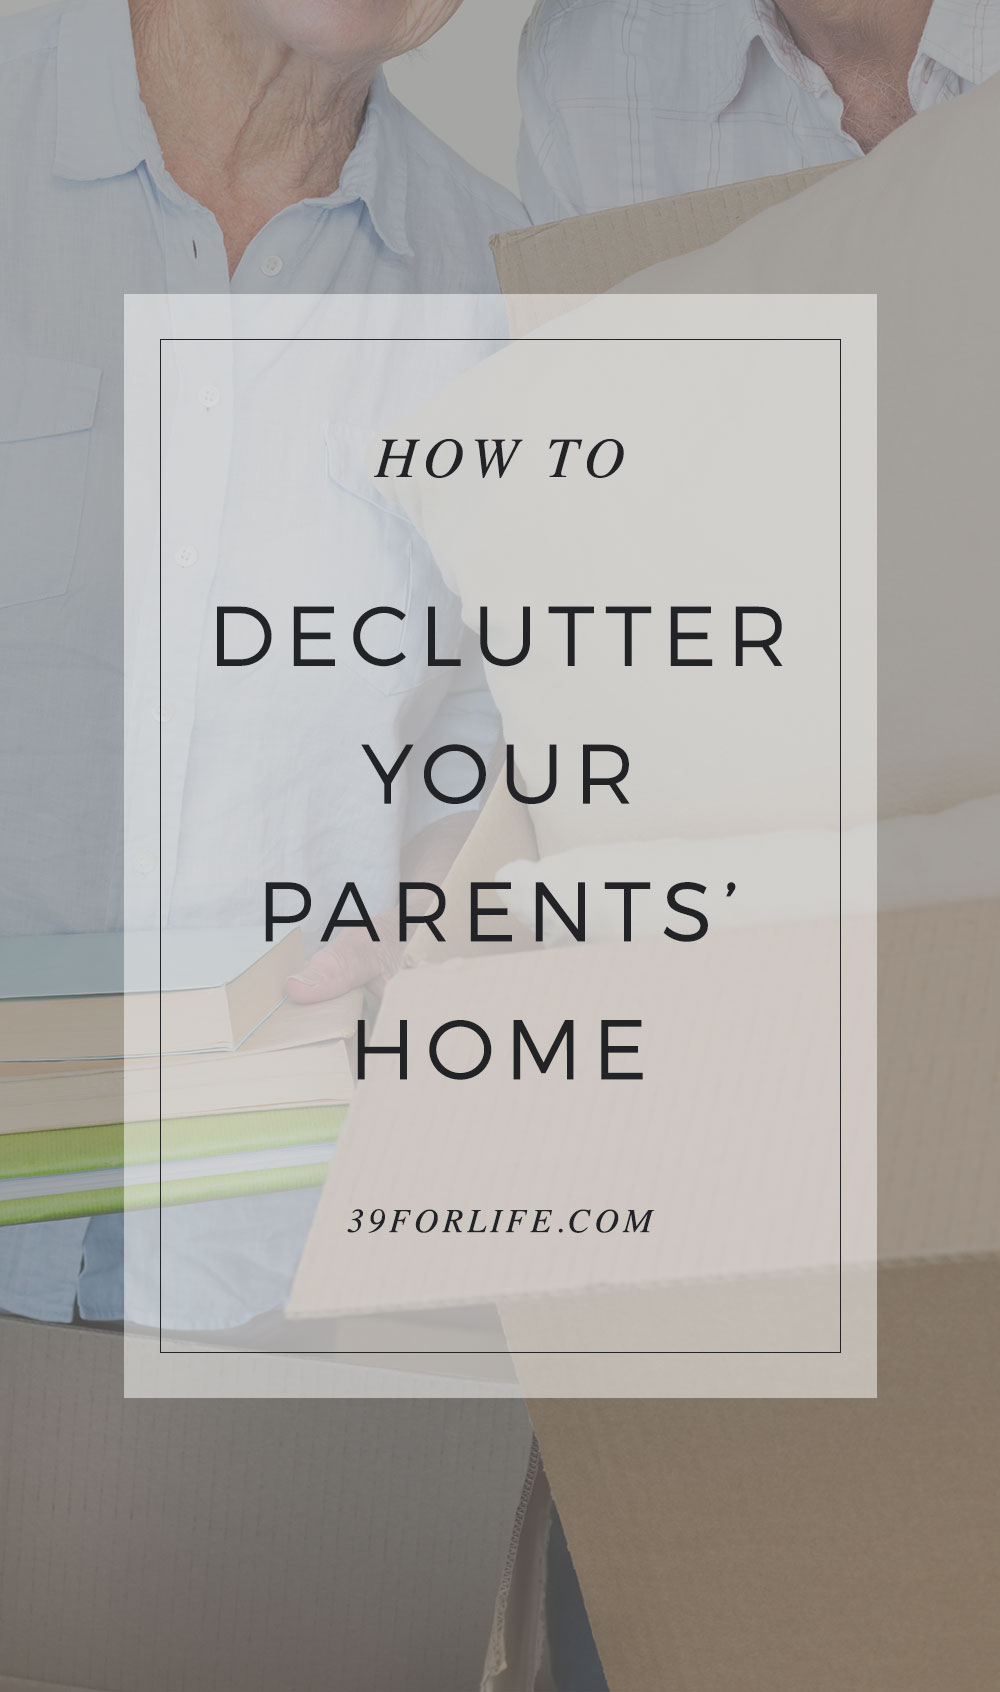 Here are some tips to declutter your parents' home and help your older loved ones lessen their belongings so that they can remain safe and happy in their living space.